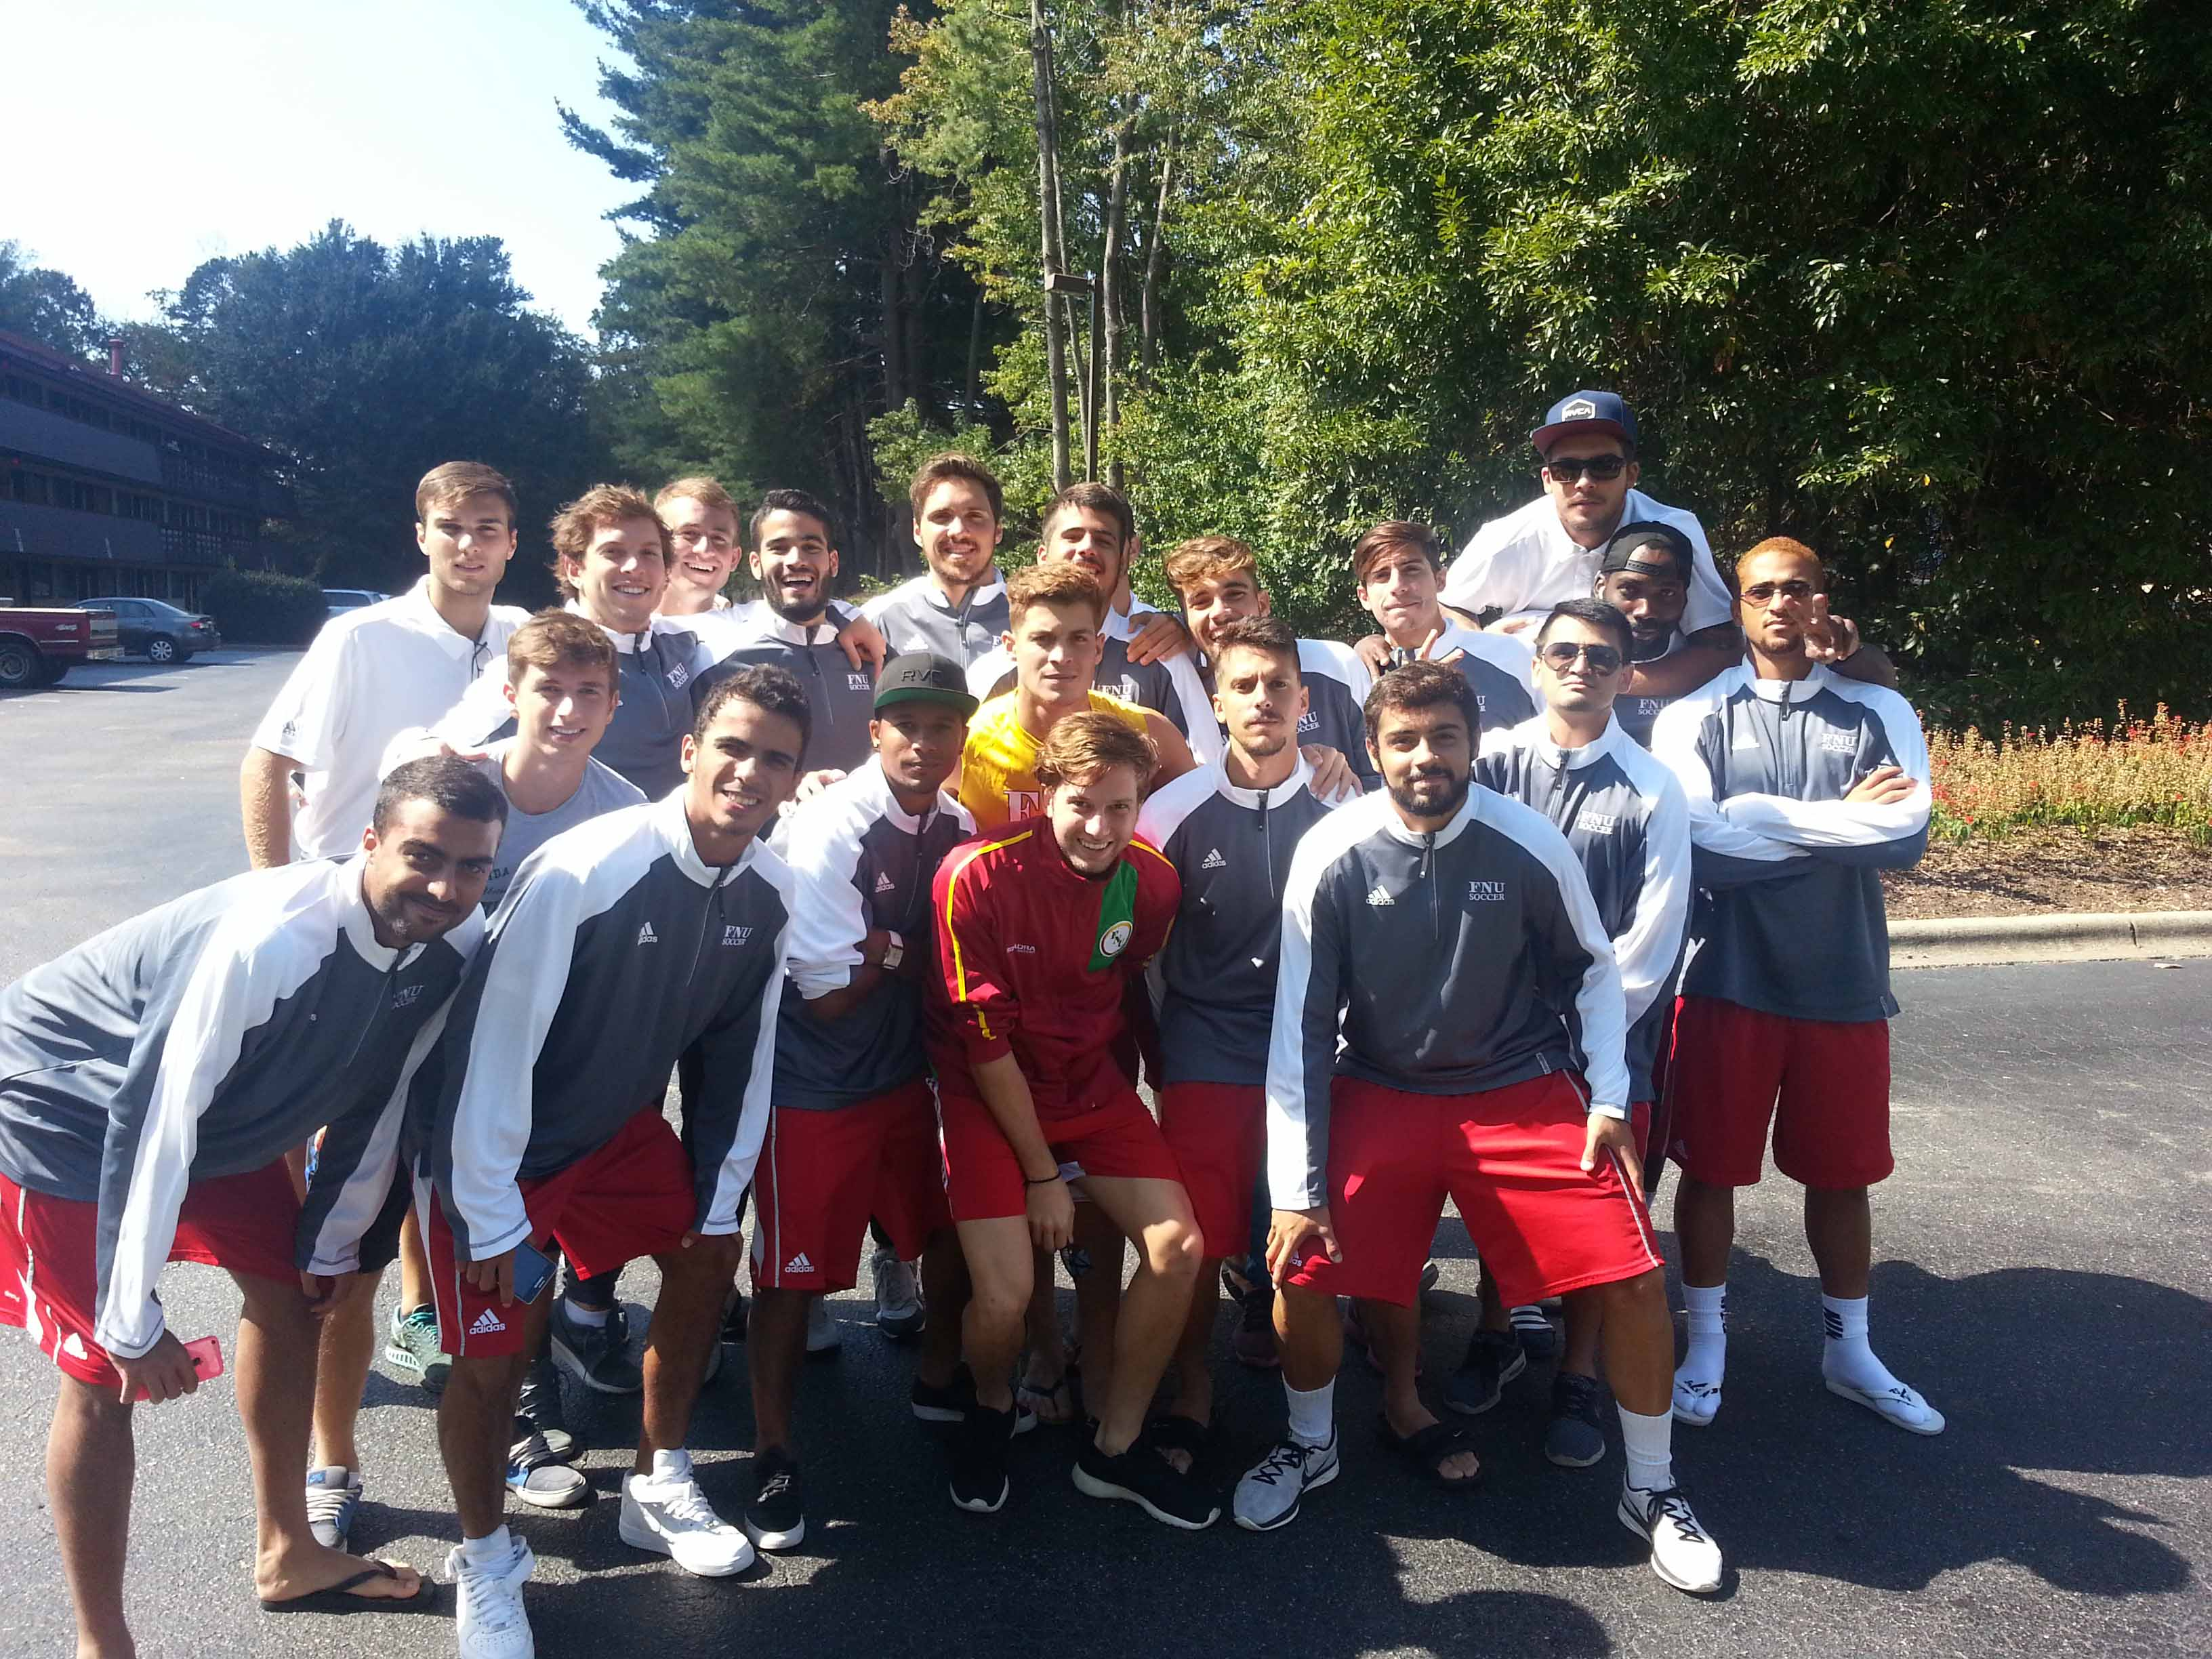 Men's Soccer at hotel before playing game vs Warren Wilson College in which FNU won 21-0